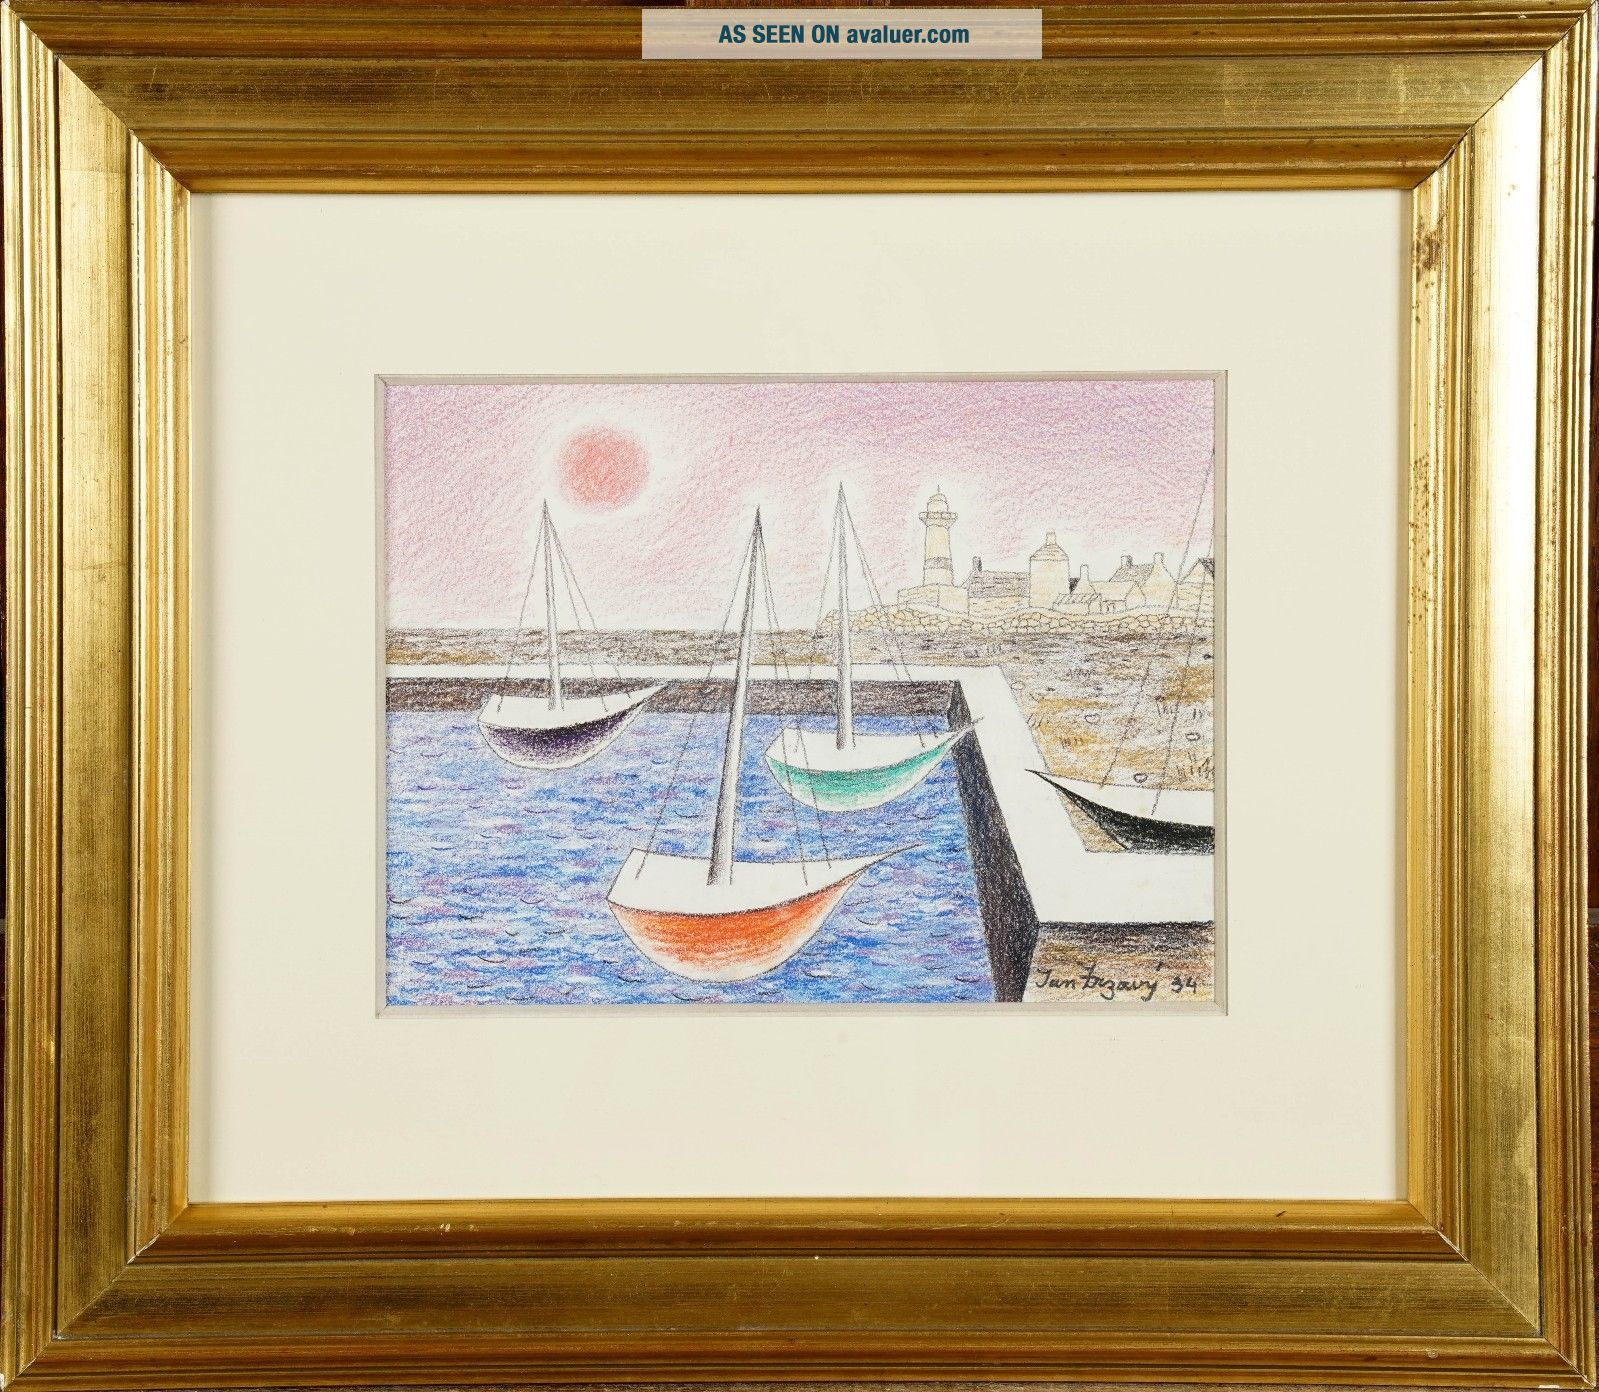 Jan Zrzavy / Czech 1934 painting COAST WITH BOATS,  with gallery receipt